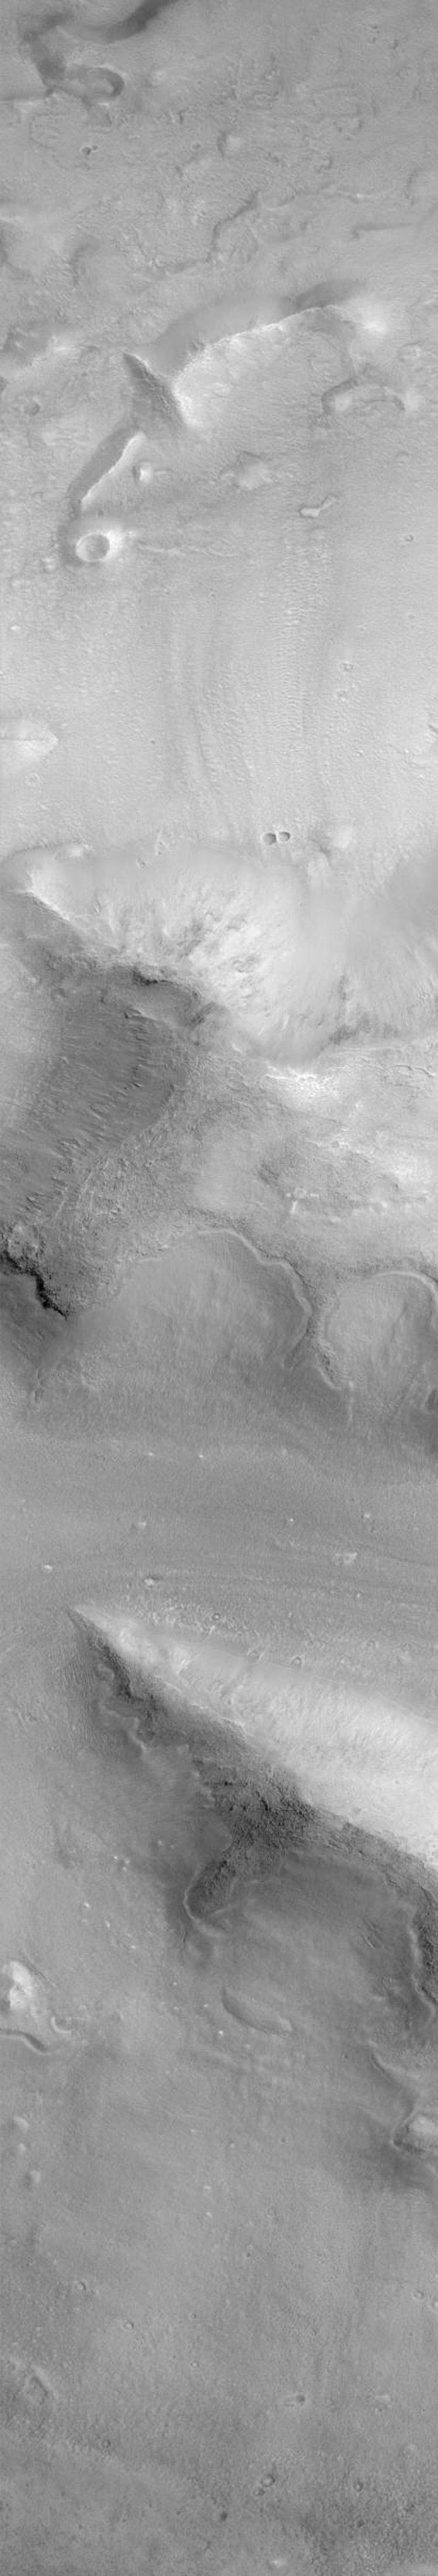 NASA's Mars Global Surveyor shows a group of four small hills surrounded by the larger mountains in the Cydonia region of Mars.